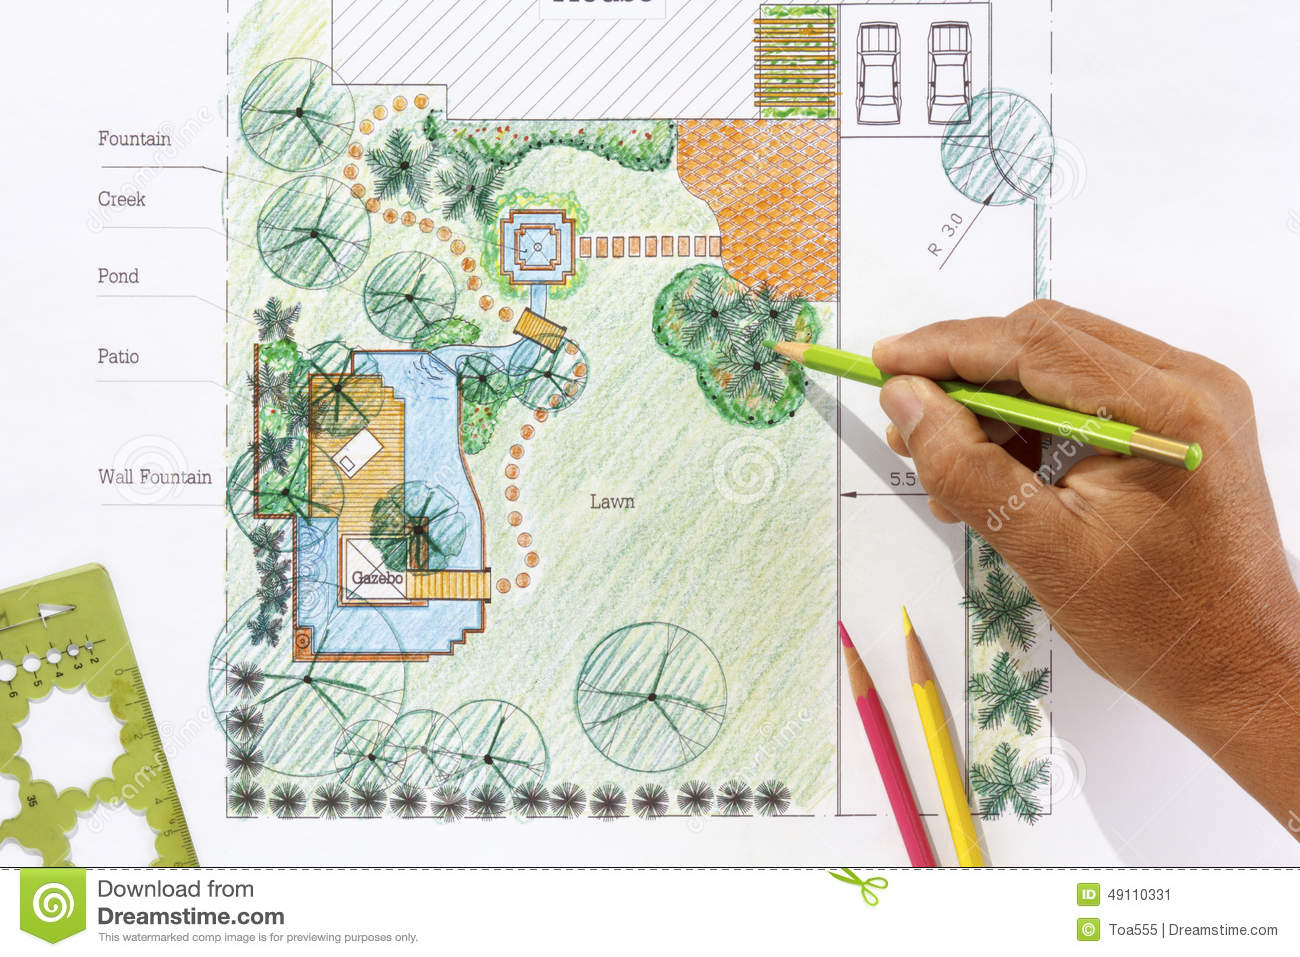 Landscape architect design water garden plans stock photo for Landscape garden design plans